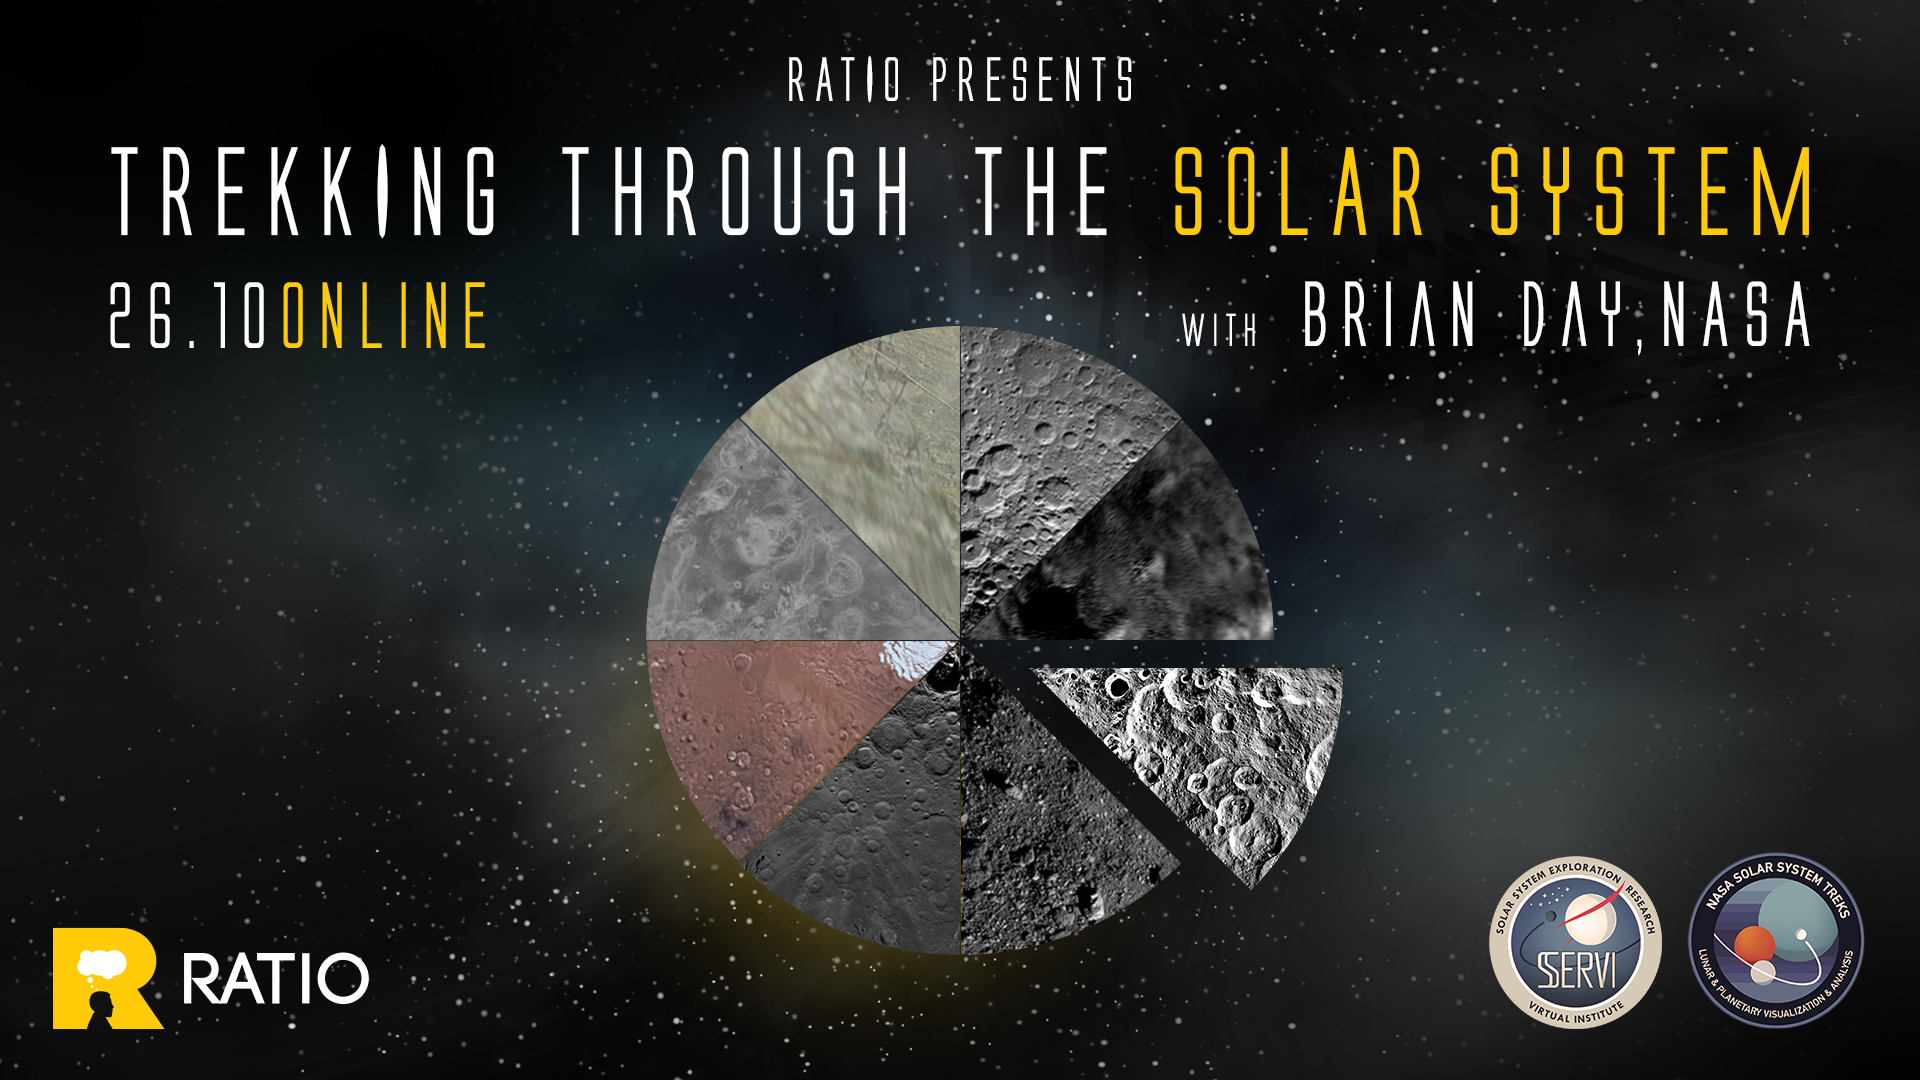 Ratio presents: Trekking through the Solar system [with NASA's Brian Day]